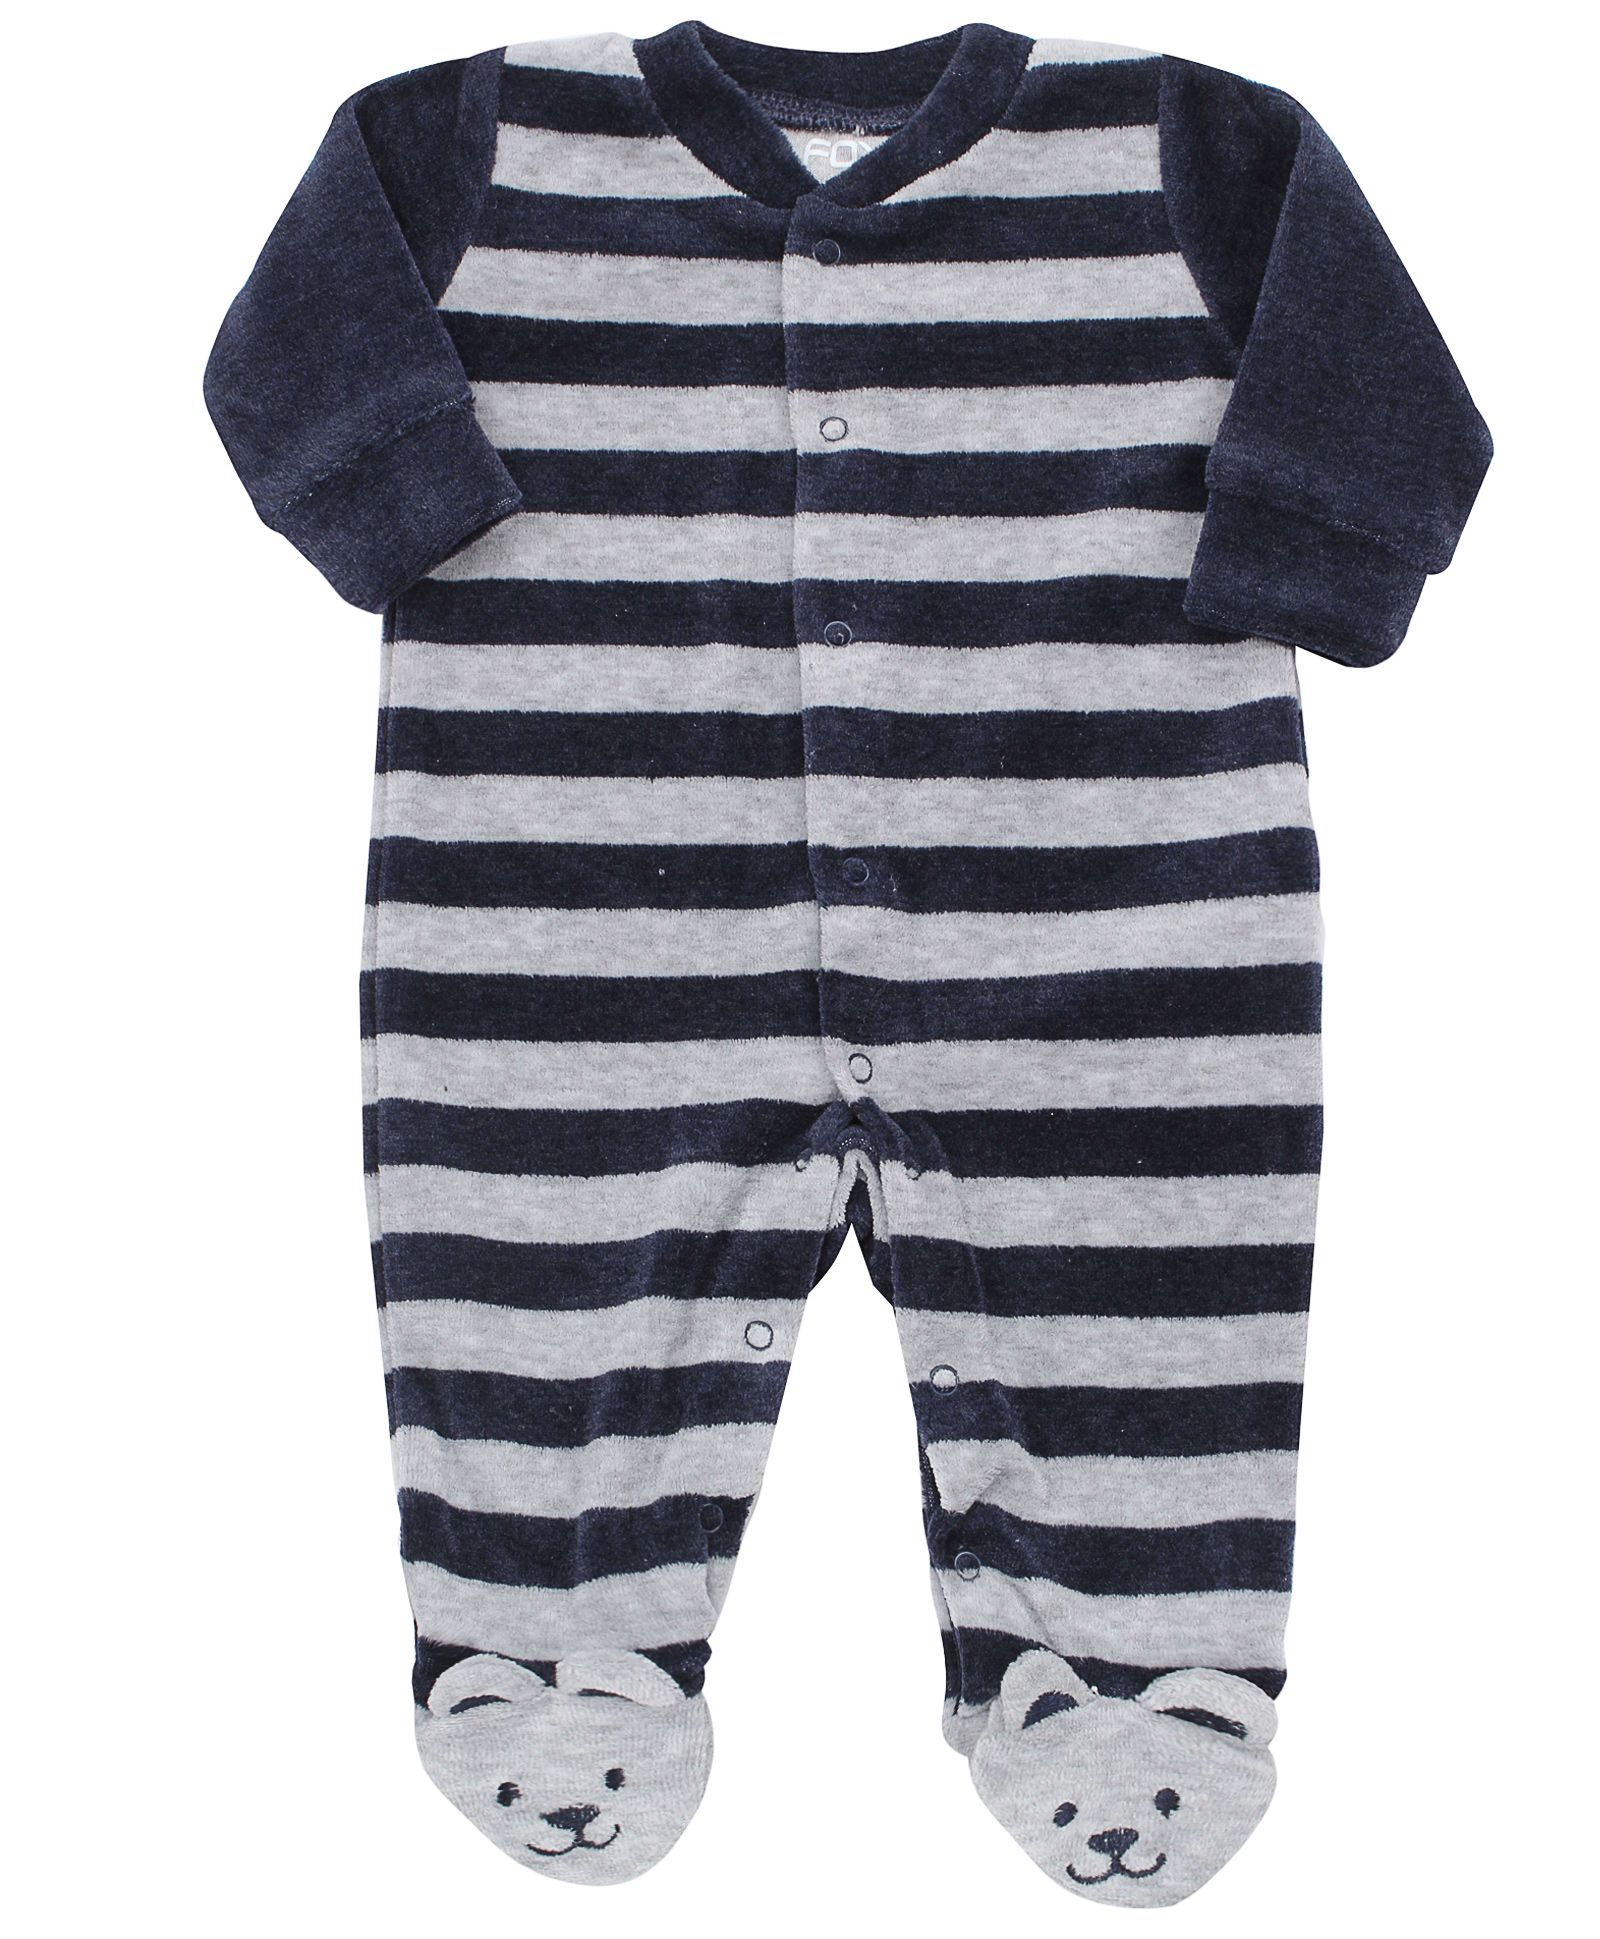 Buy baby onesies and rompers online for boys & girls at bloggeri.tk Shop newborn and toddler onesies & rompers at affordable prices. FREE Shipping! Buy baby onesies and rompers online for boys & girls at bloggeri.tk Shop newborn and toddler onesies & rompers at .